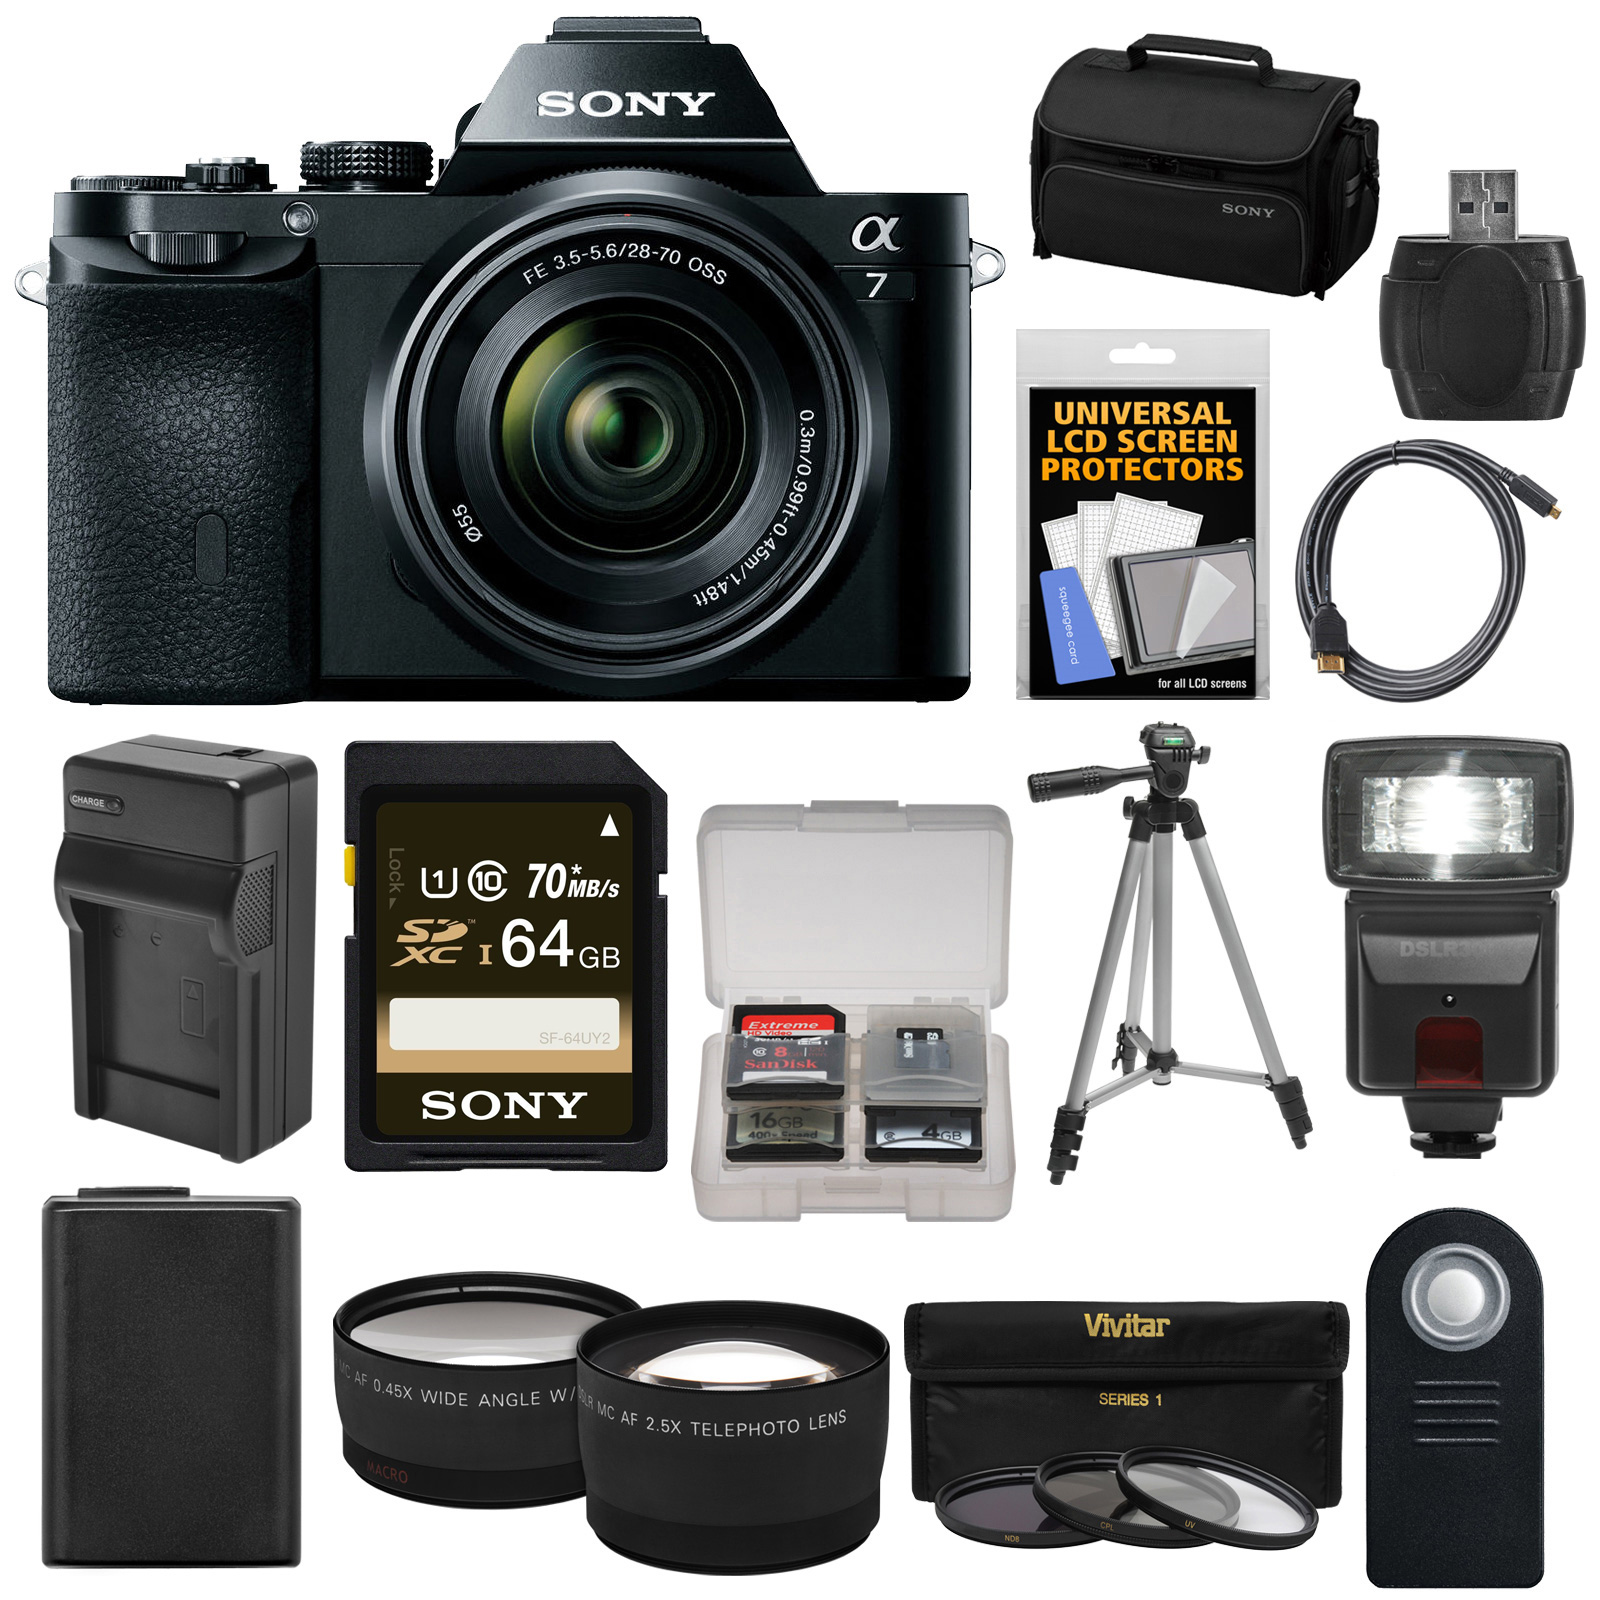 Sony Alpha A7 Digital Camera & 28-70mm FE OSS Lens with 64GB Card + Battery & Charger + Case + Tripod + Flash... by Sony